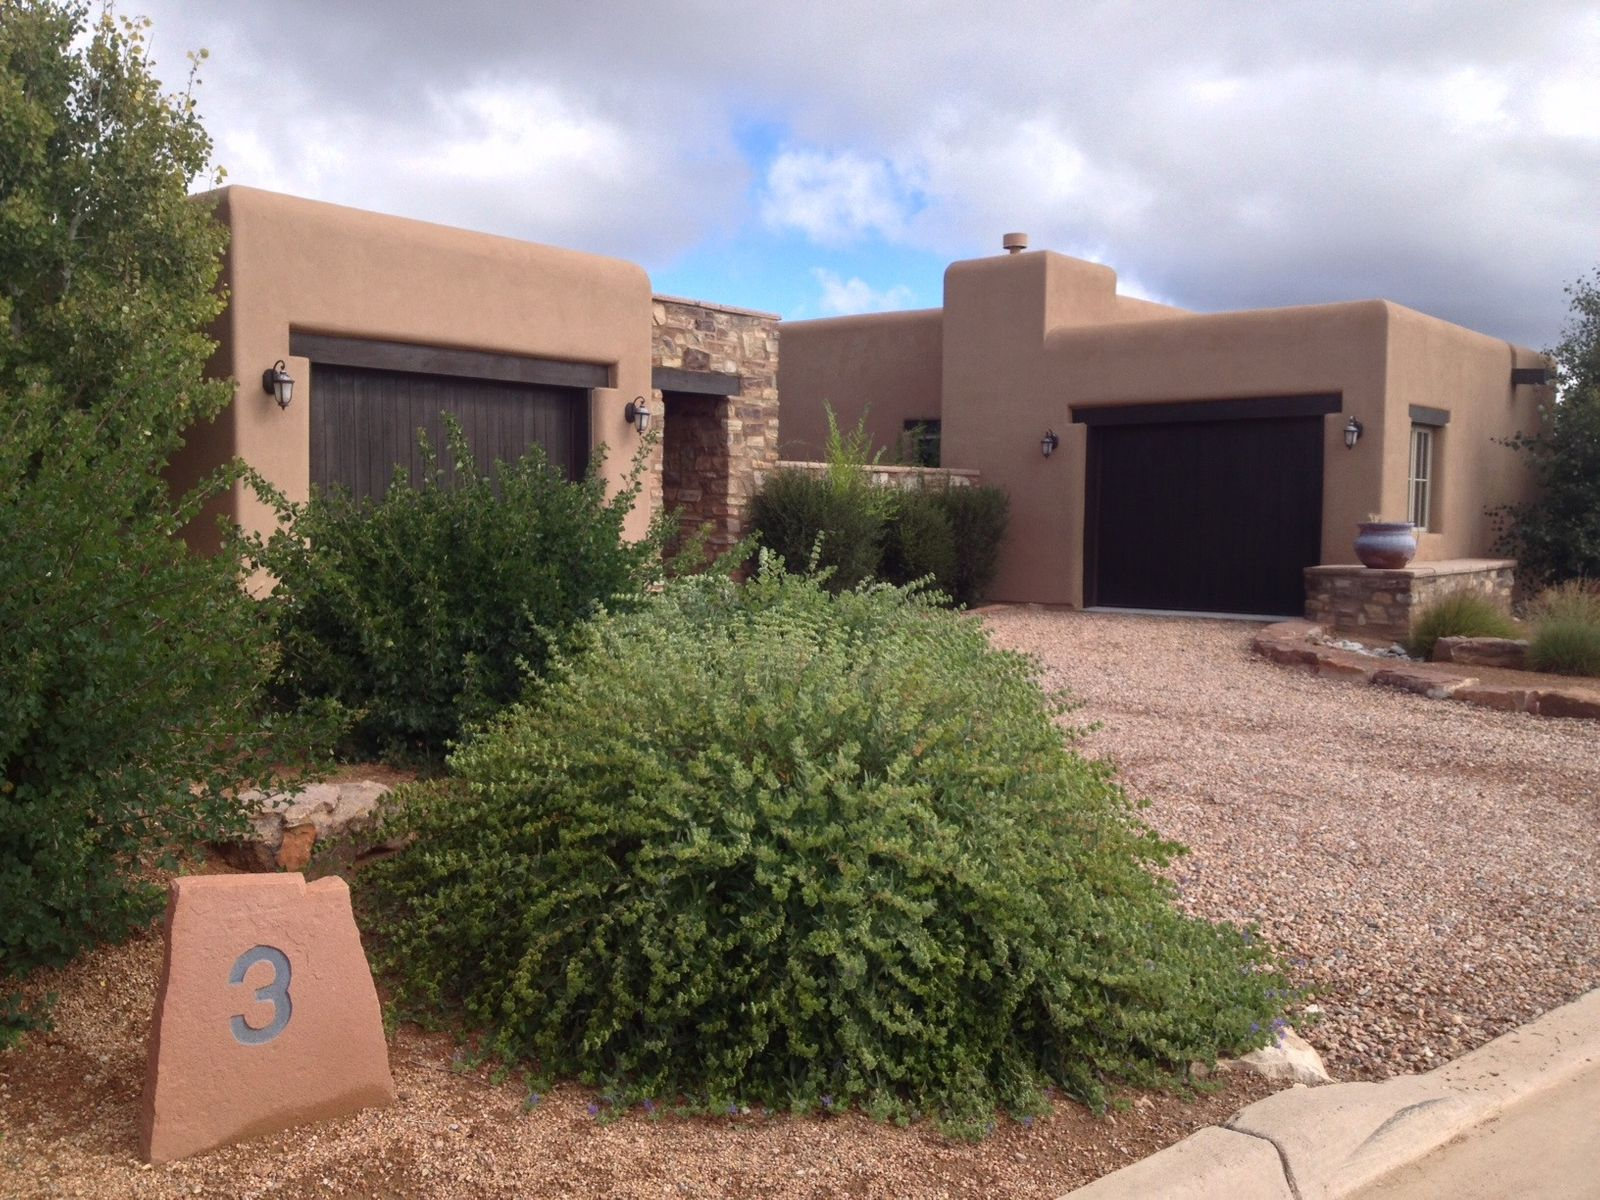 3 Delantera Court, Santa Fe NM Single Family Home - Santa Fe Real Estate